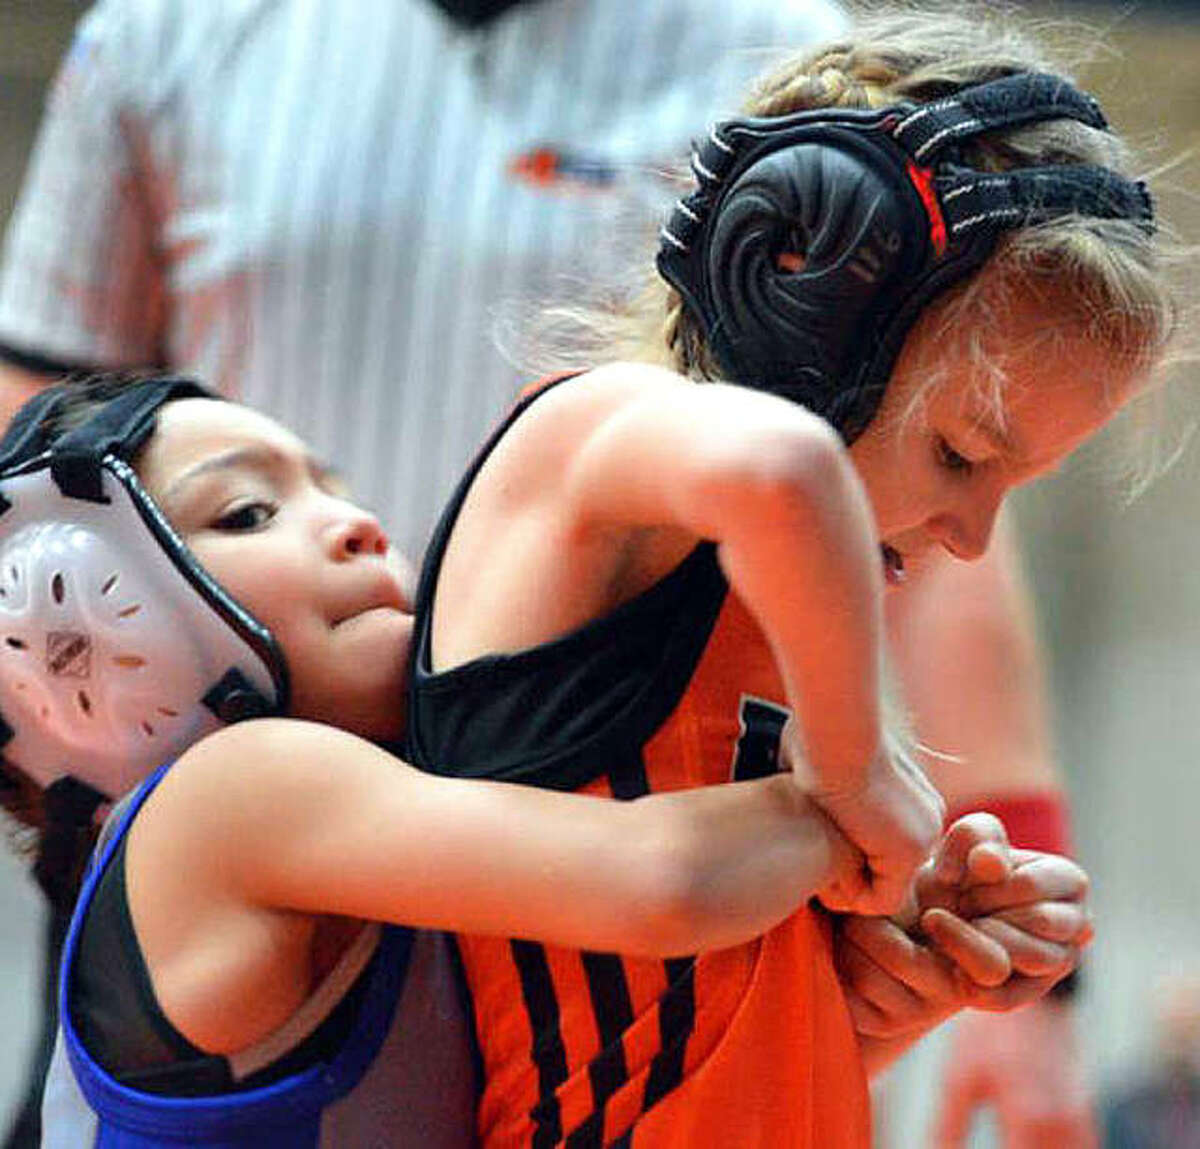 Avery Madison, 7, right, of the Edwardsville Wrestling Club tries to escape her opponent's grasp during an Edwardsville Open bantam division match in January.